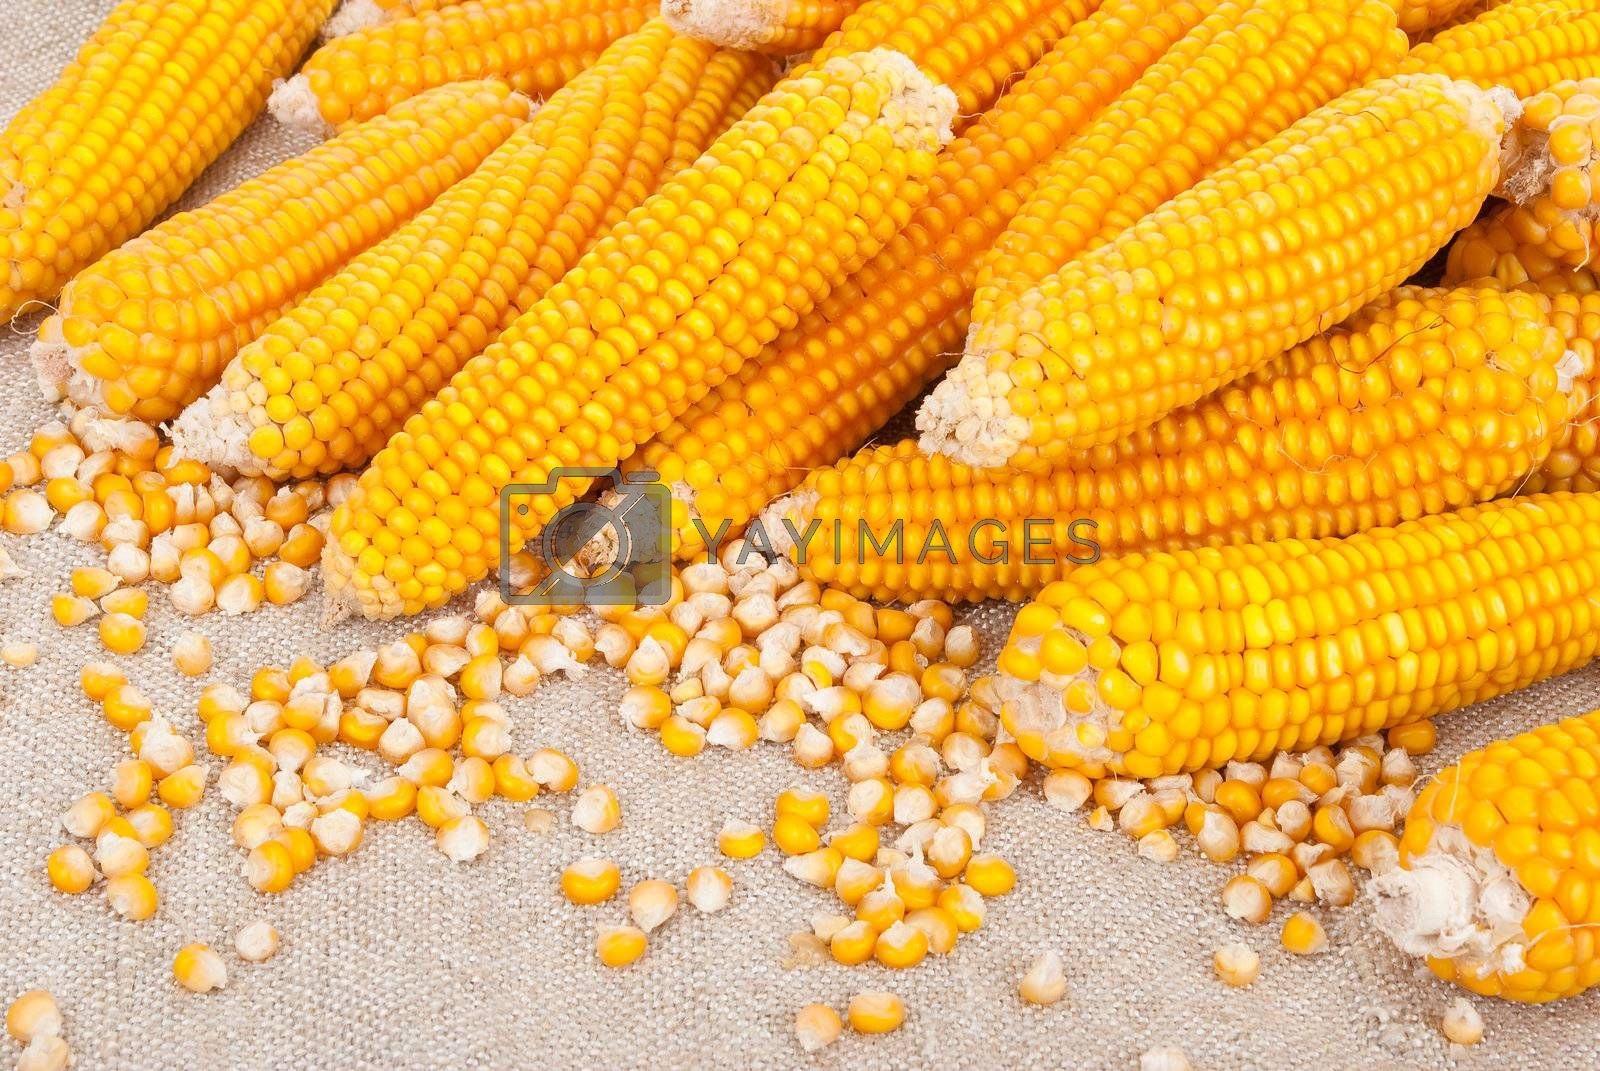 Ripe ears of corn on a background of burlap